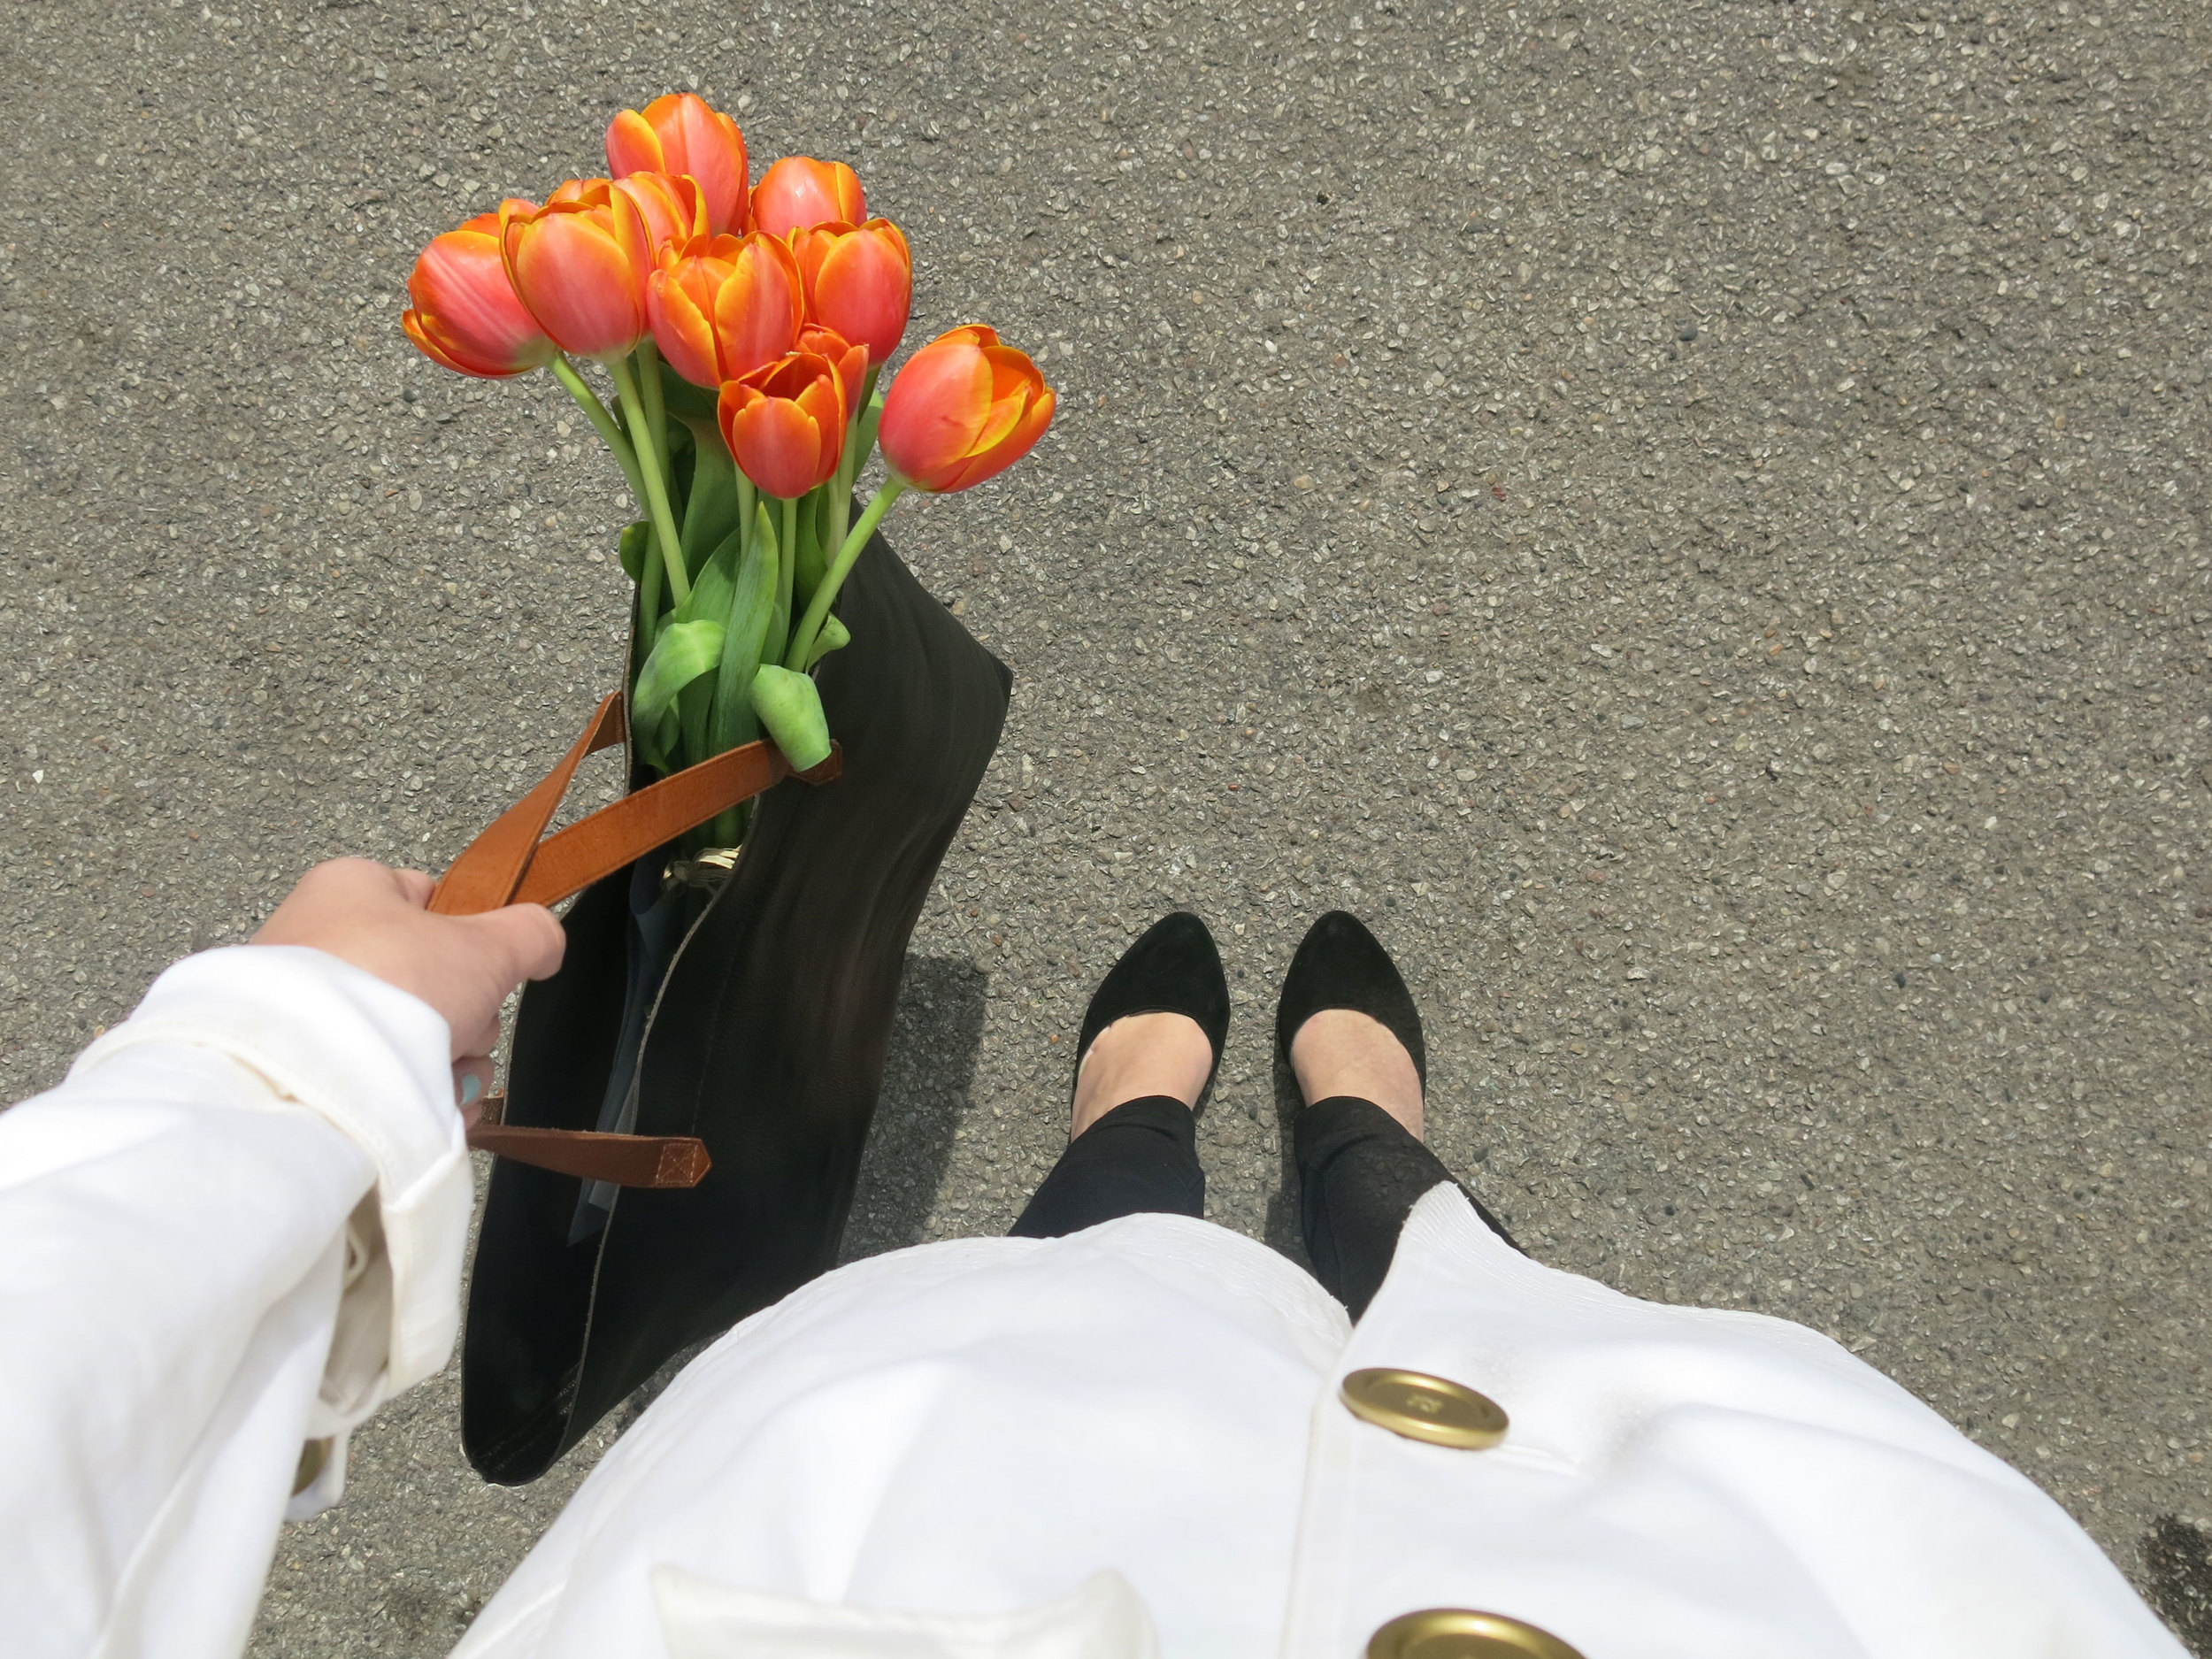 Madewell Tote, Fresh tulips, and black heels